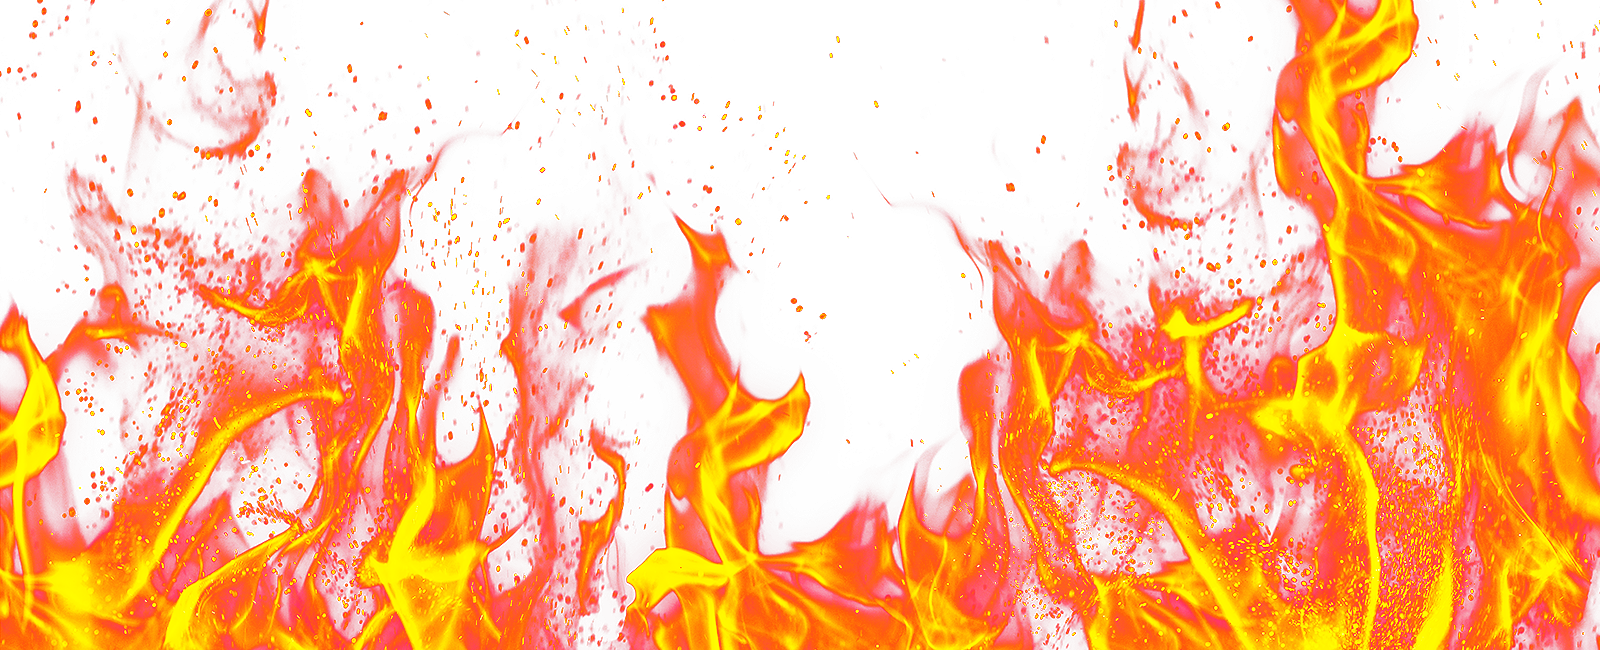 1600x650 Fire White Background Images All White Background